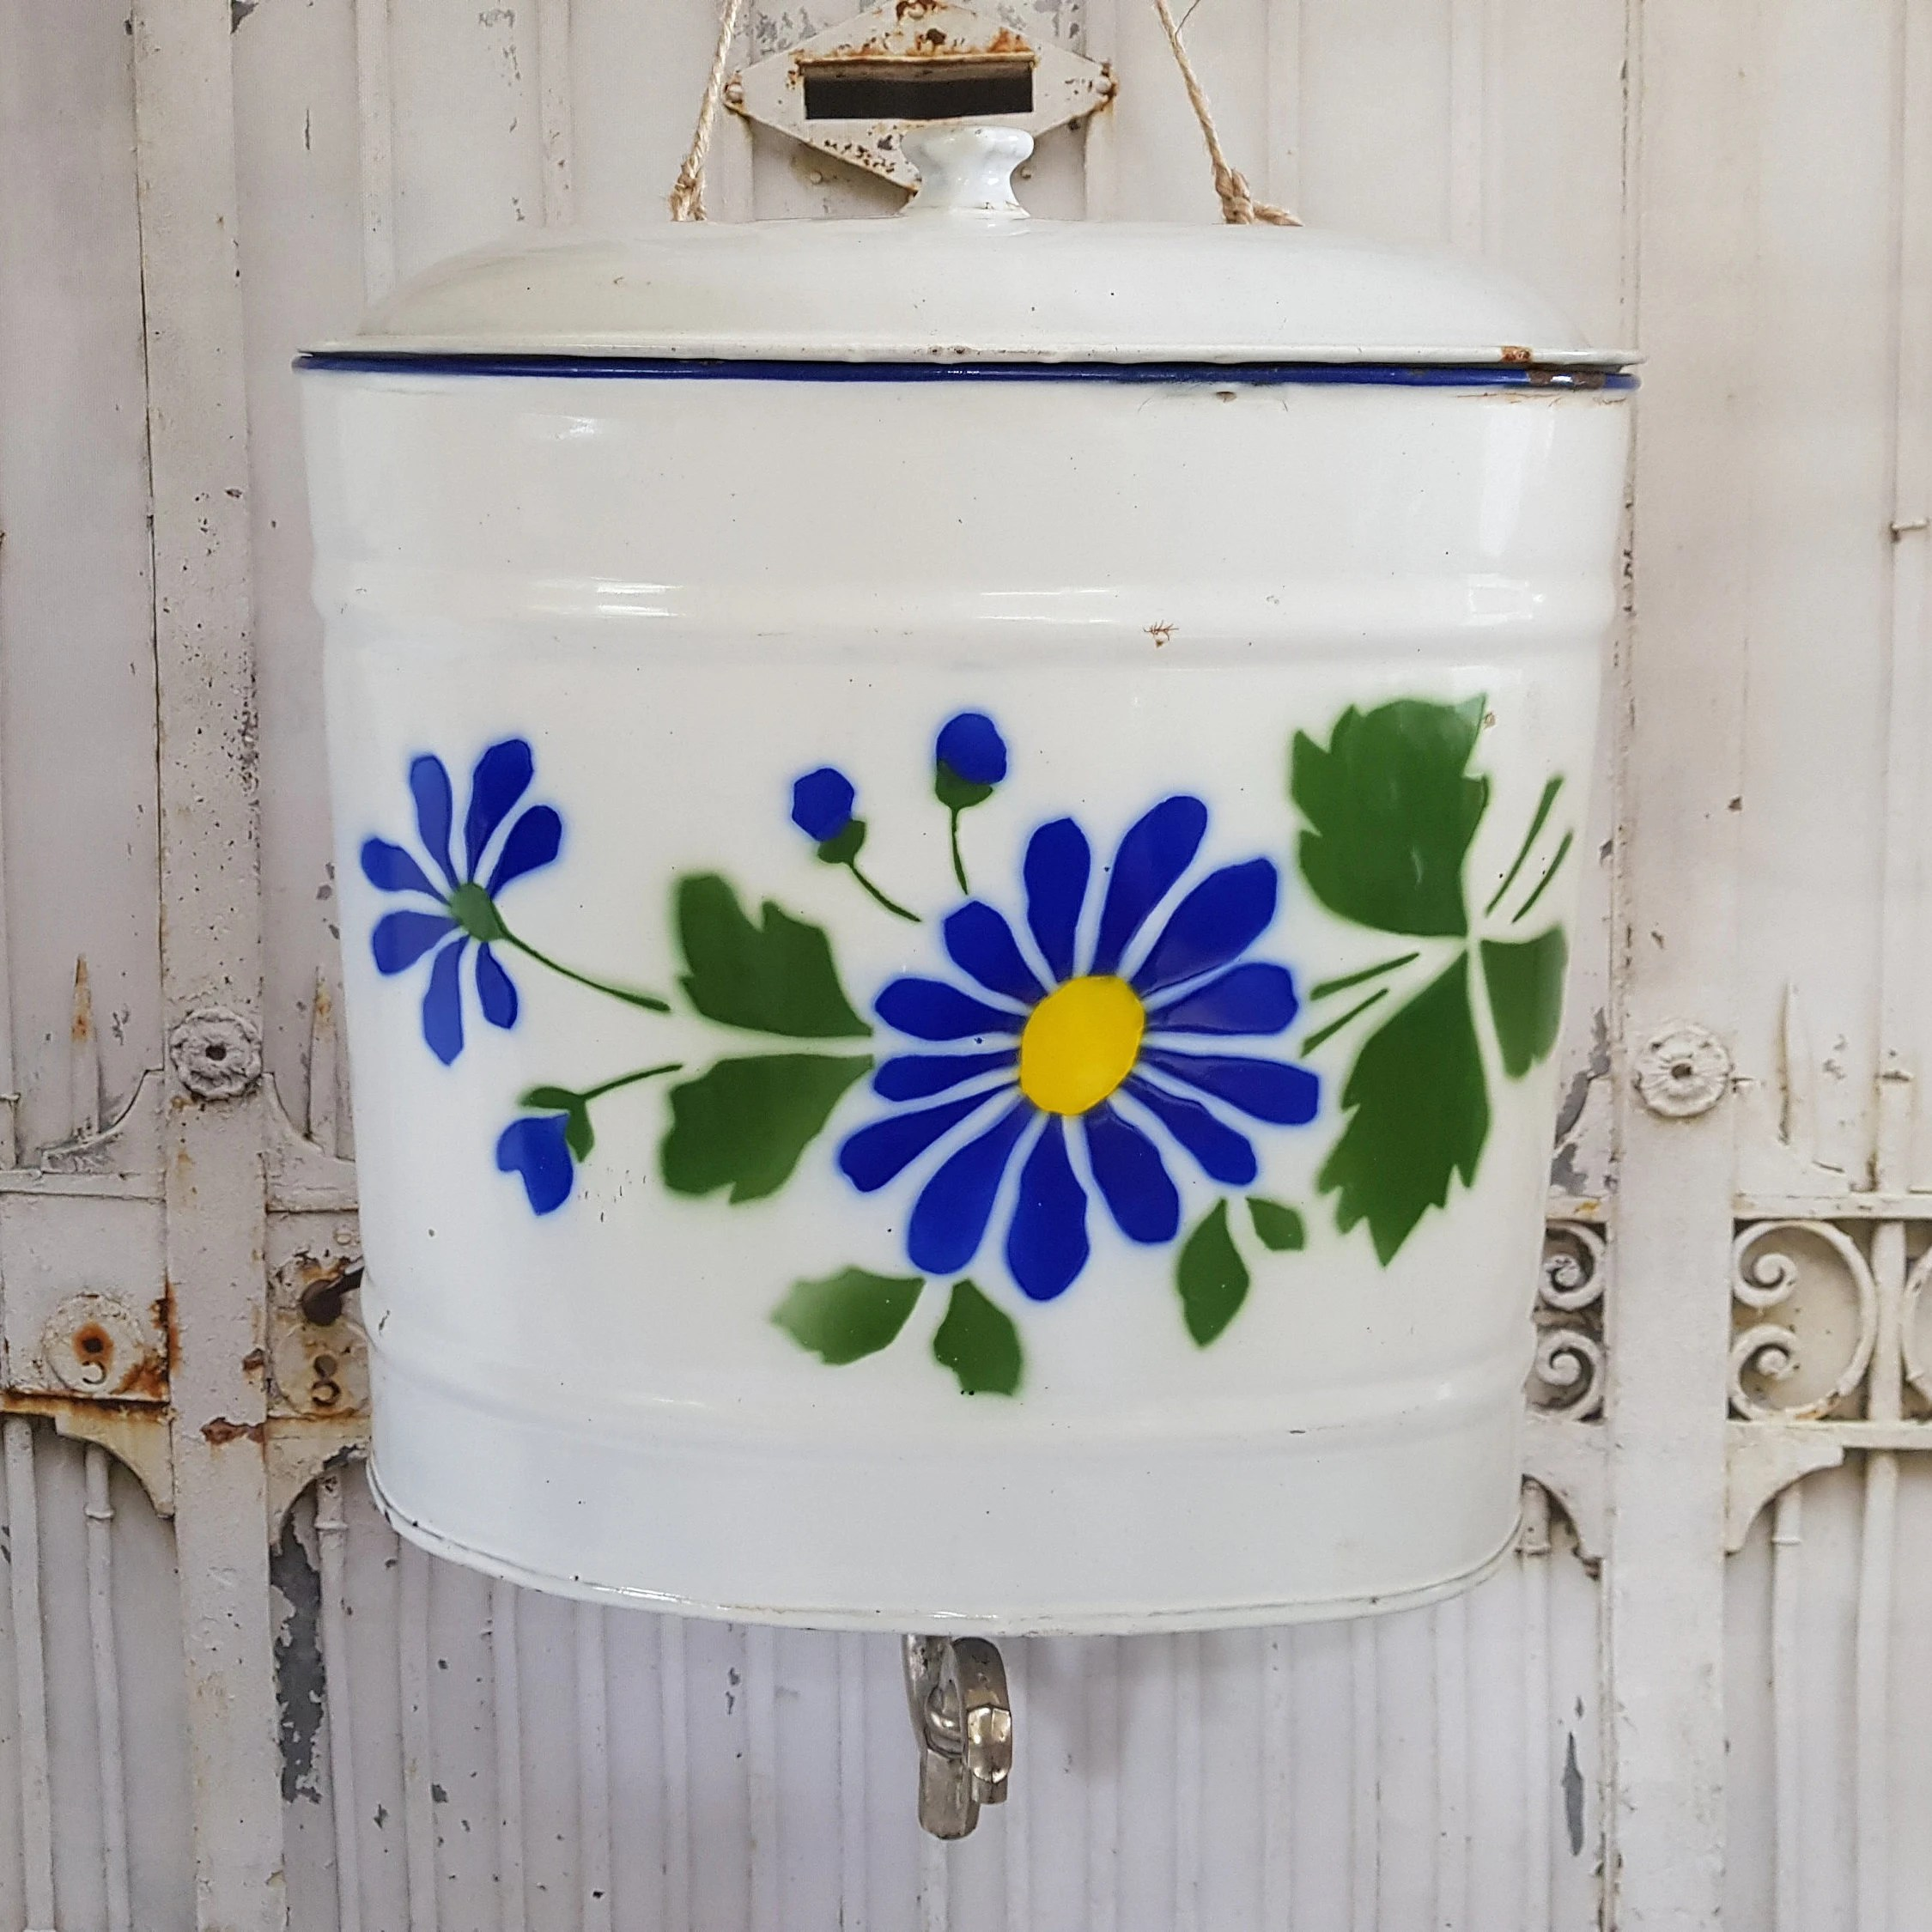 Lavabo Shabby Chic French Vintage Water Lavabo Set Enameled Flowers In Blue And Green Shabby Chic French Enamelware Bathroom Decor Garden Decor